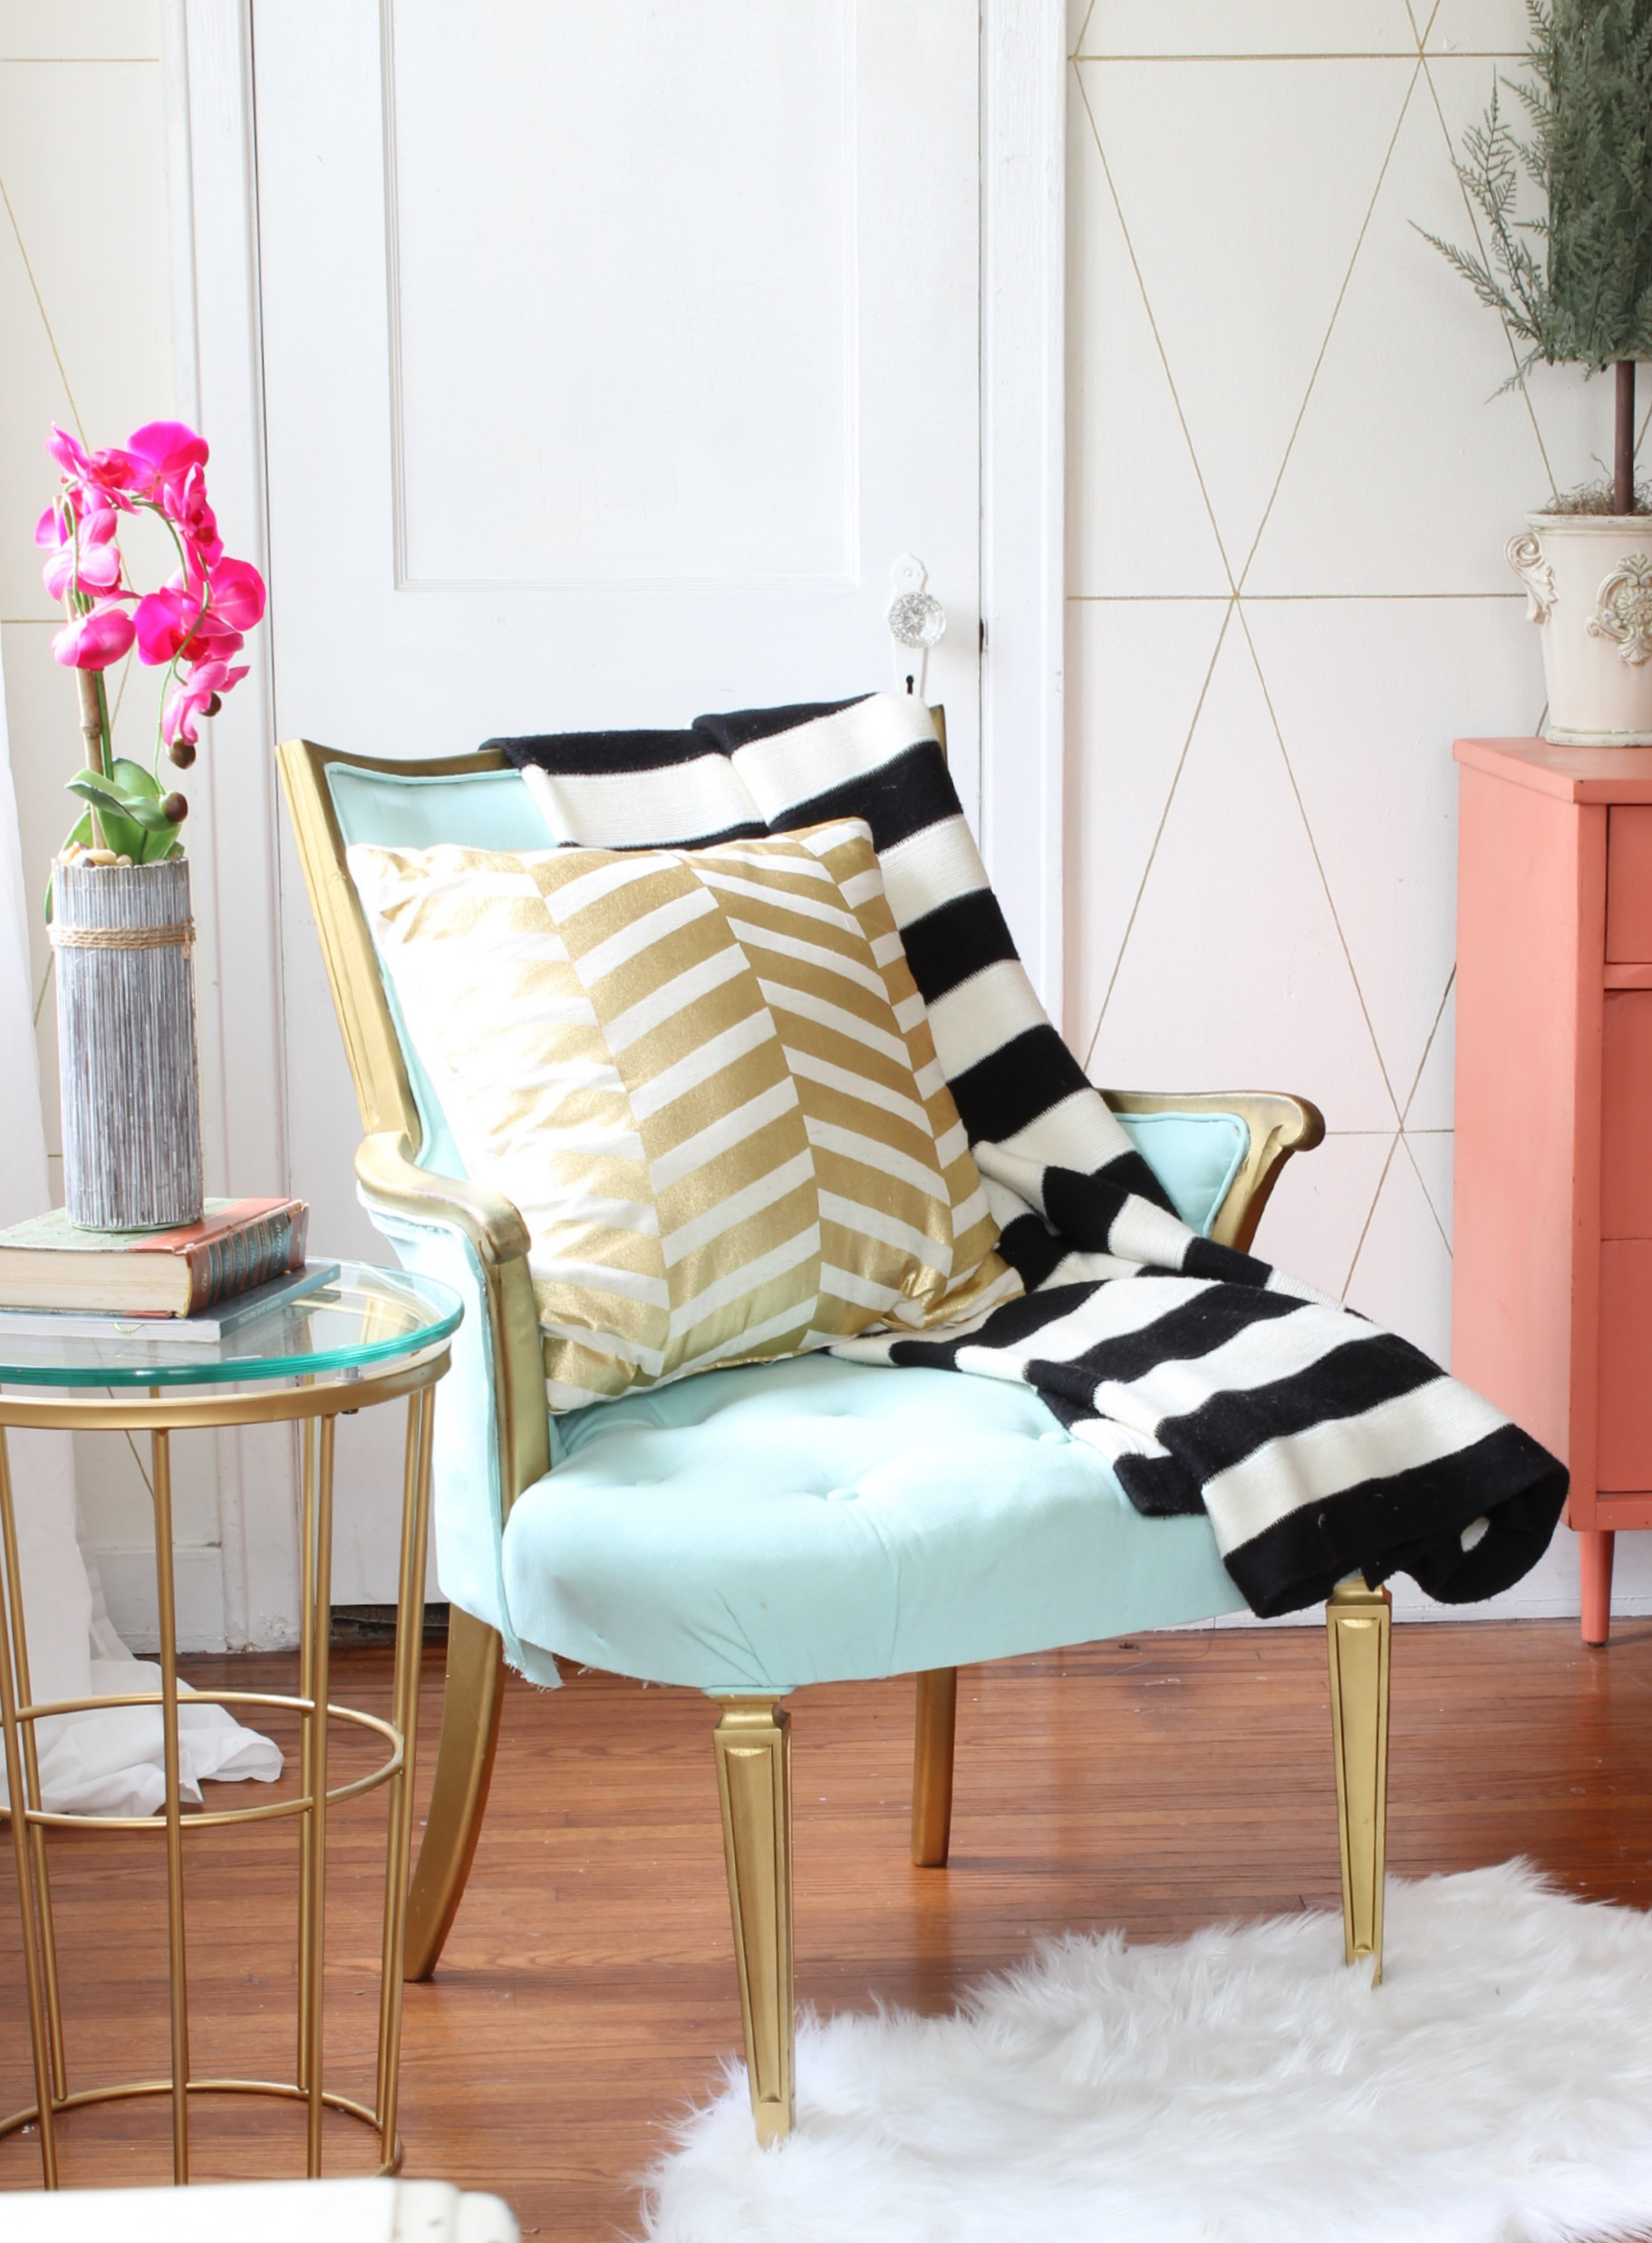 Living Room Makeover with jewel tones, black & white and gold accents